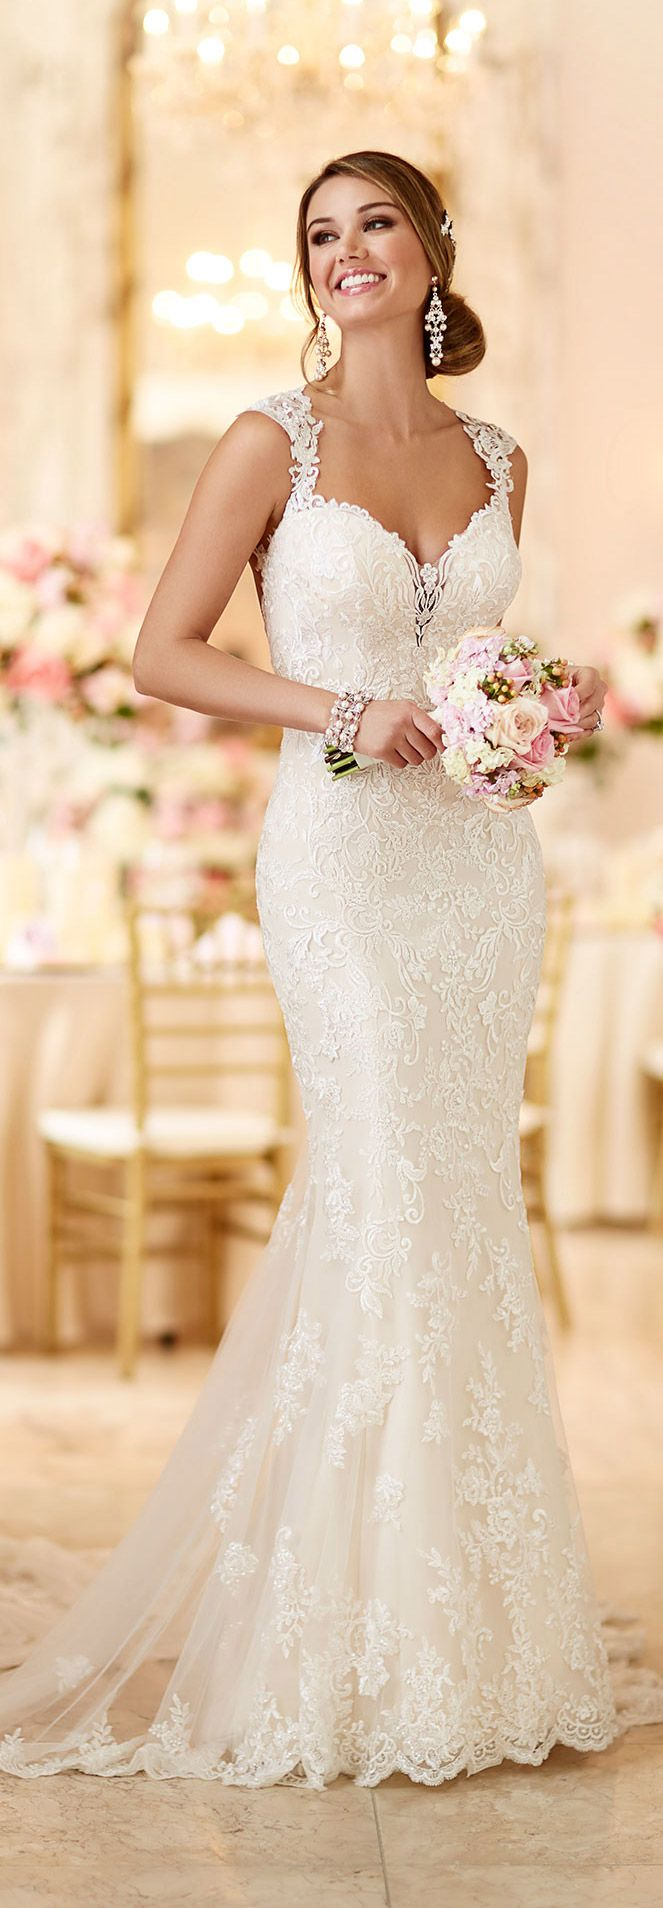 Stella York long lace wedding dress with beads